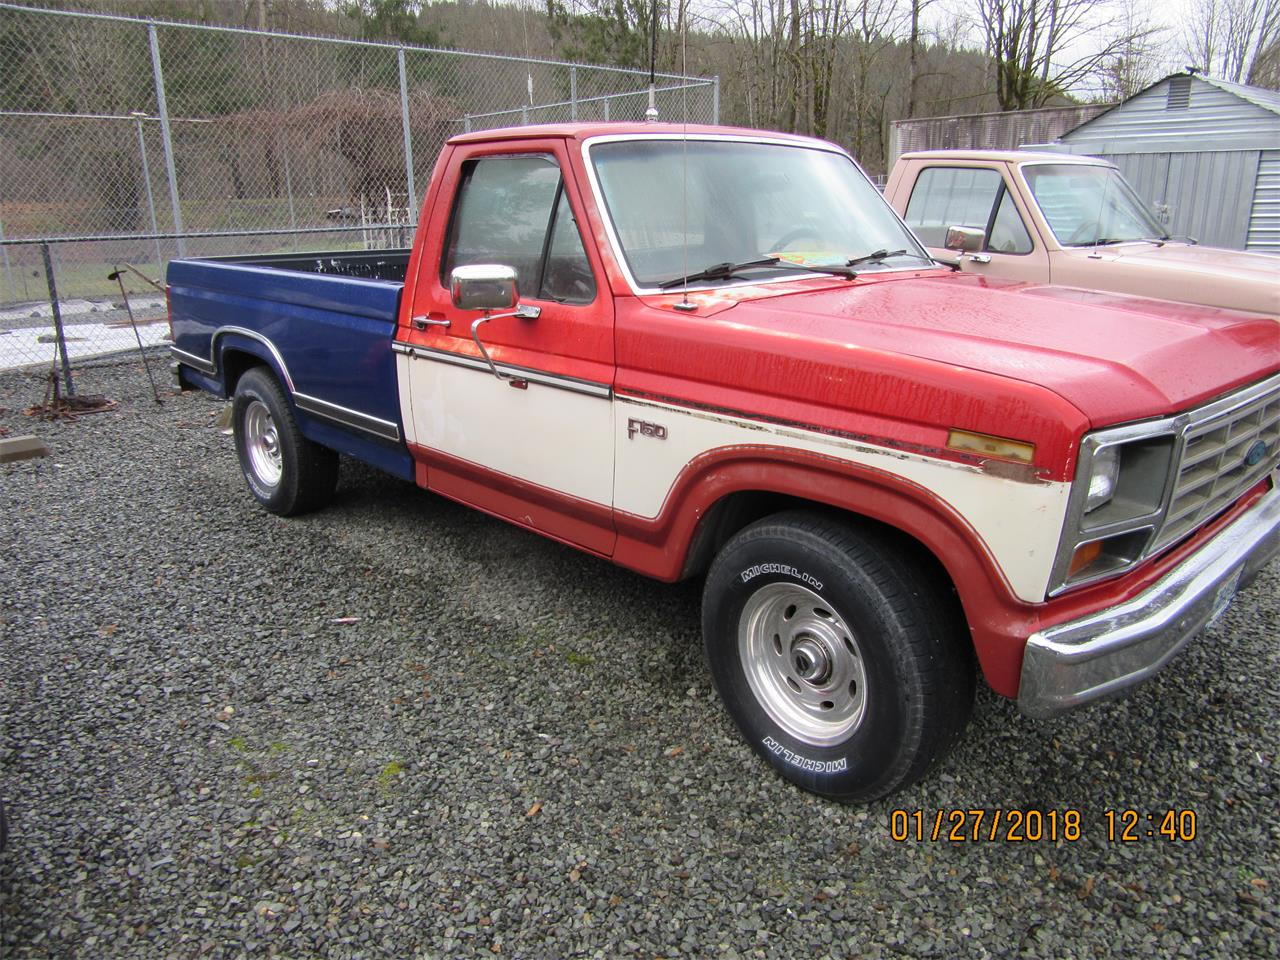 1985 Ford F150 for sale in PUYALLUP, WA – photo 2